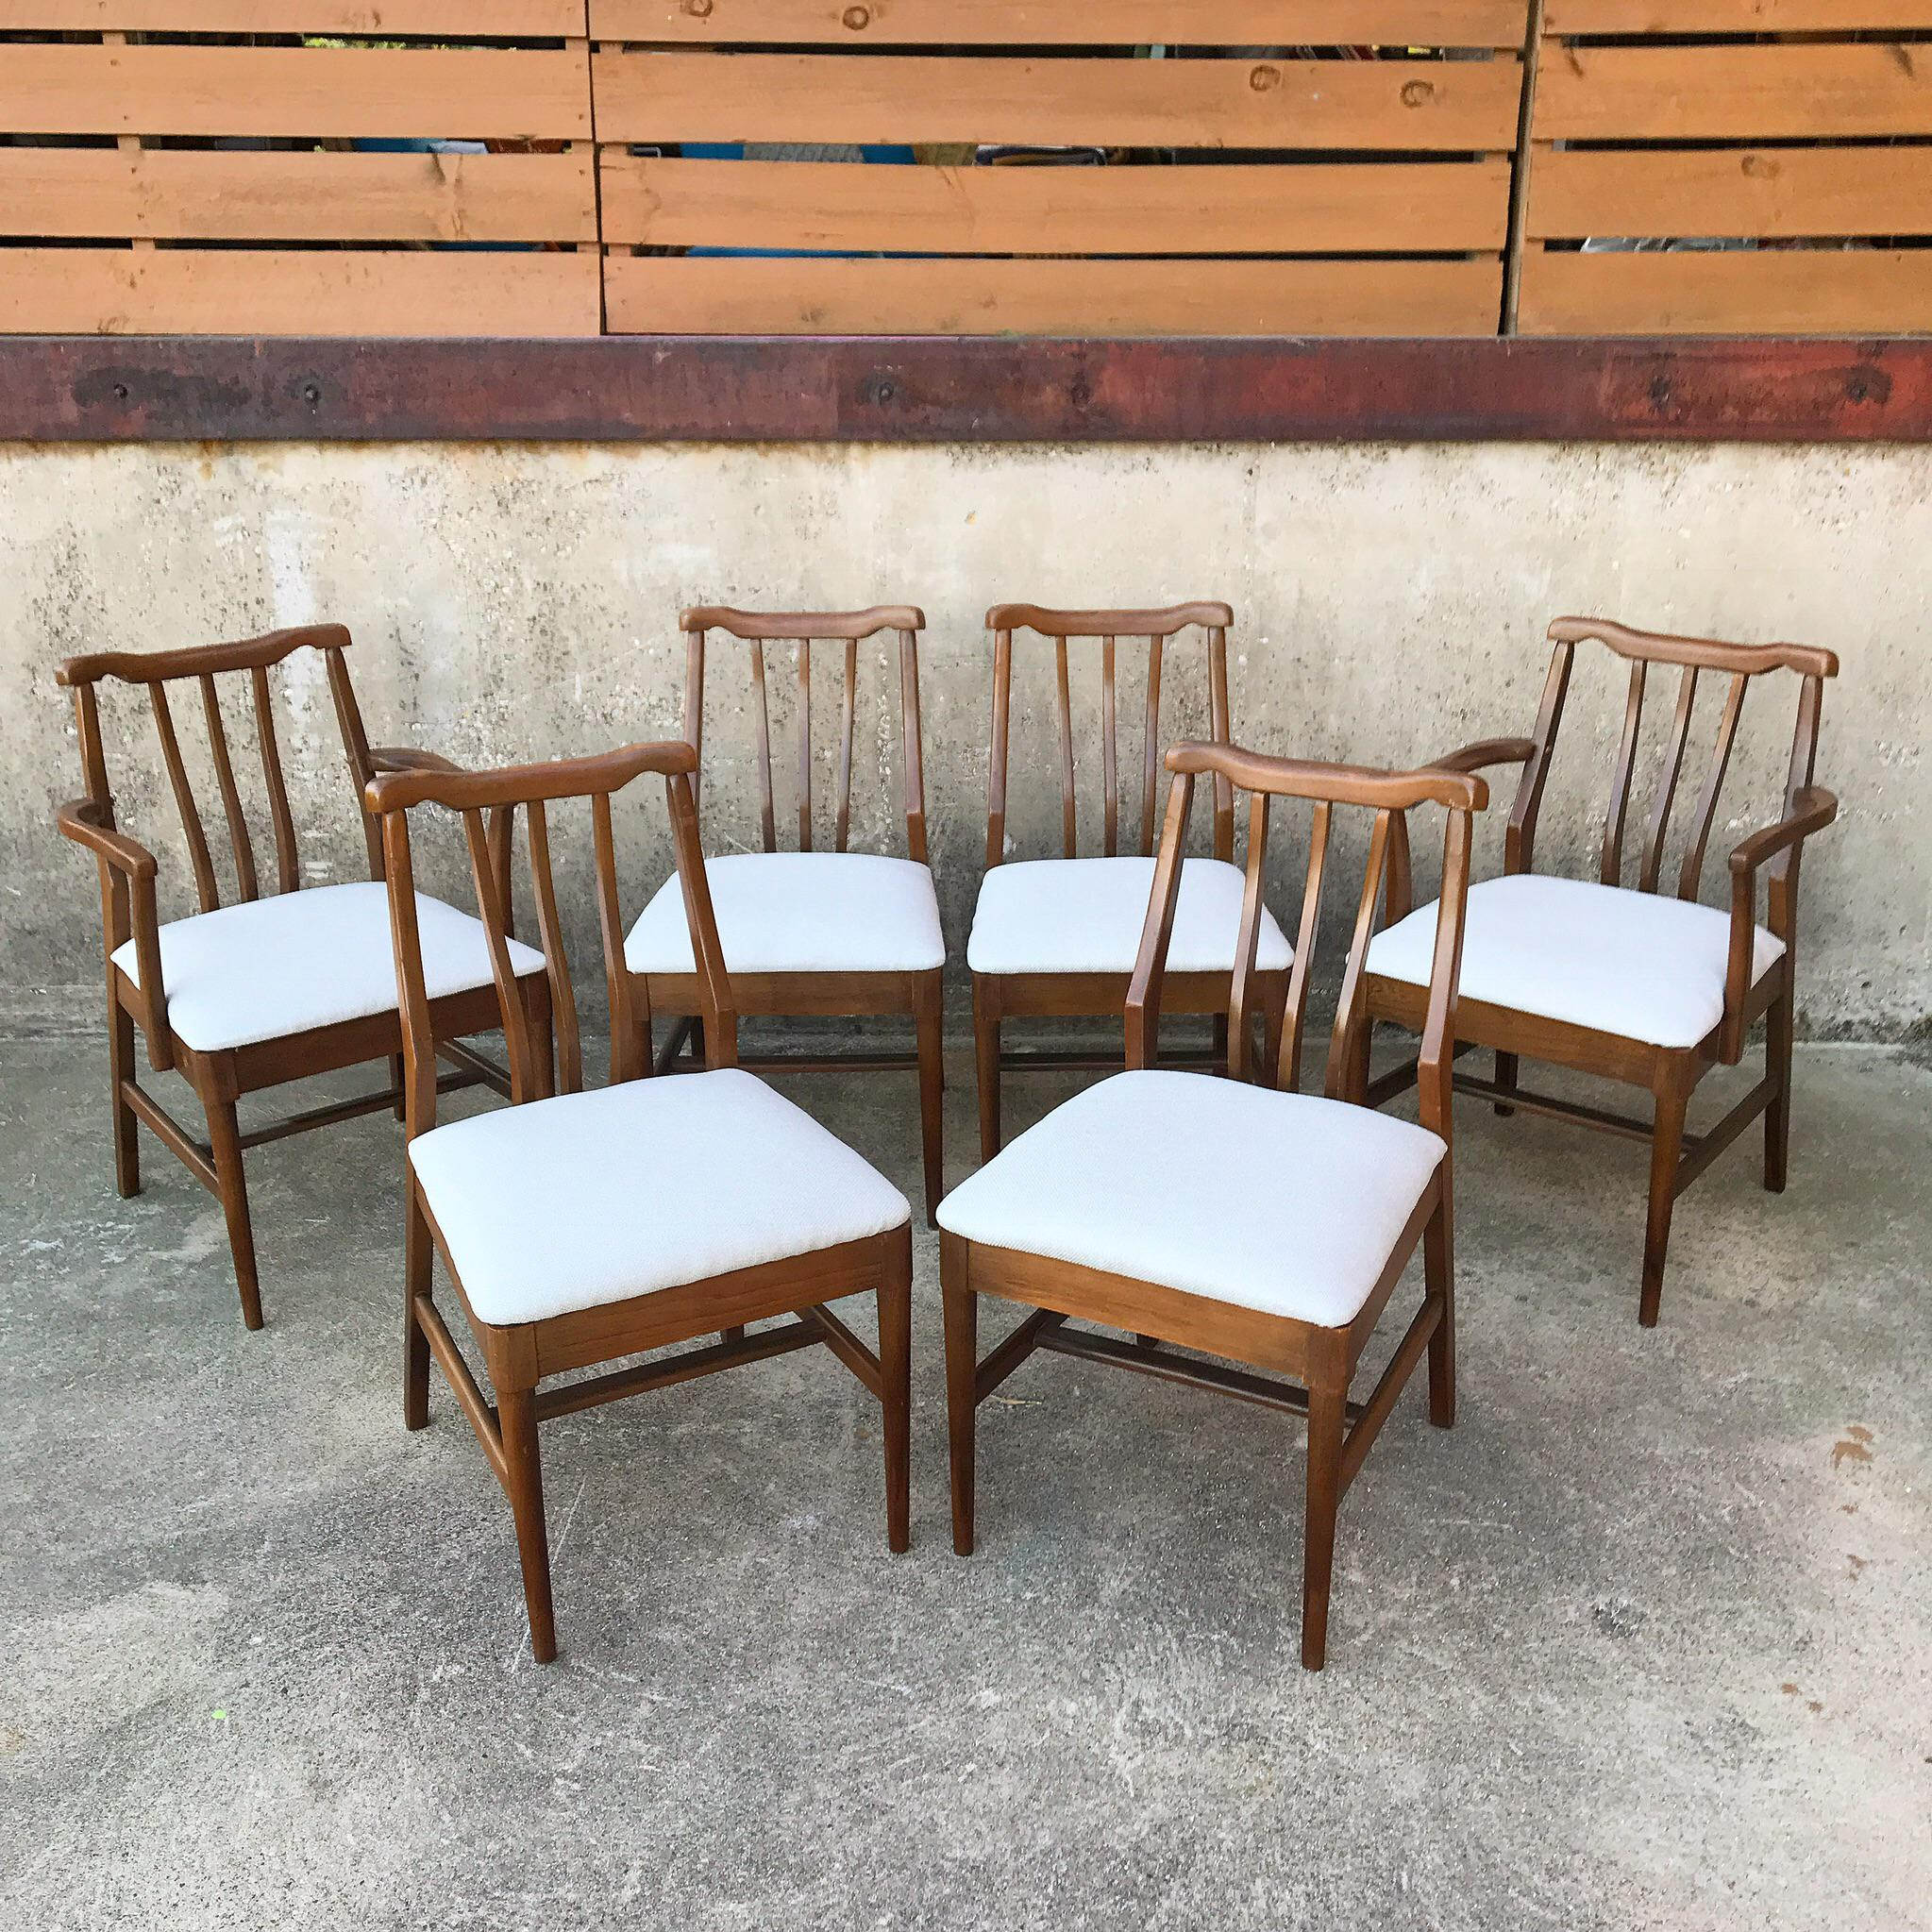 Charming John Stuart Dining Chairs   Set Of 6 For Sale   Image 5 Of 5